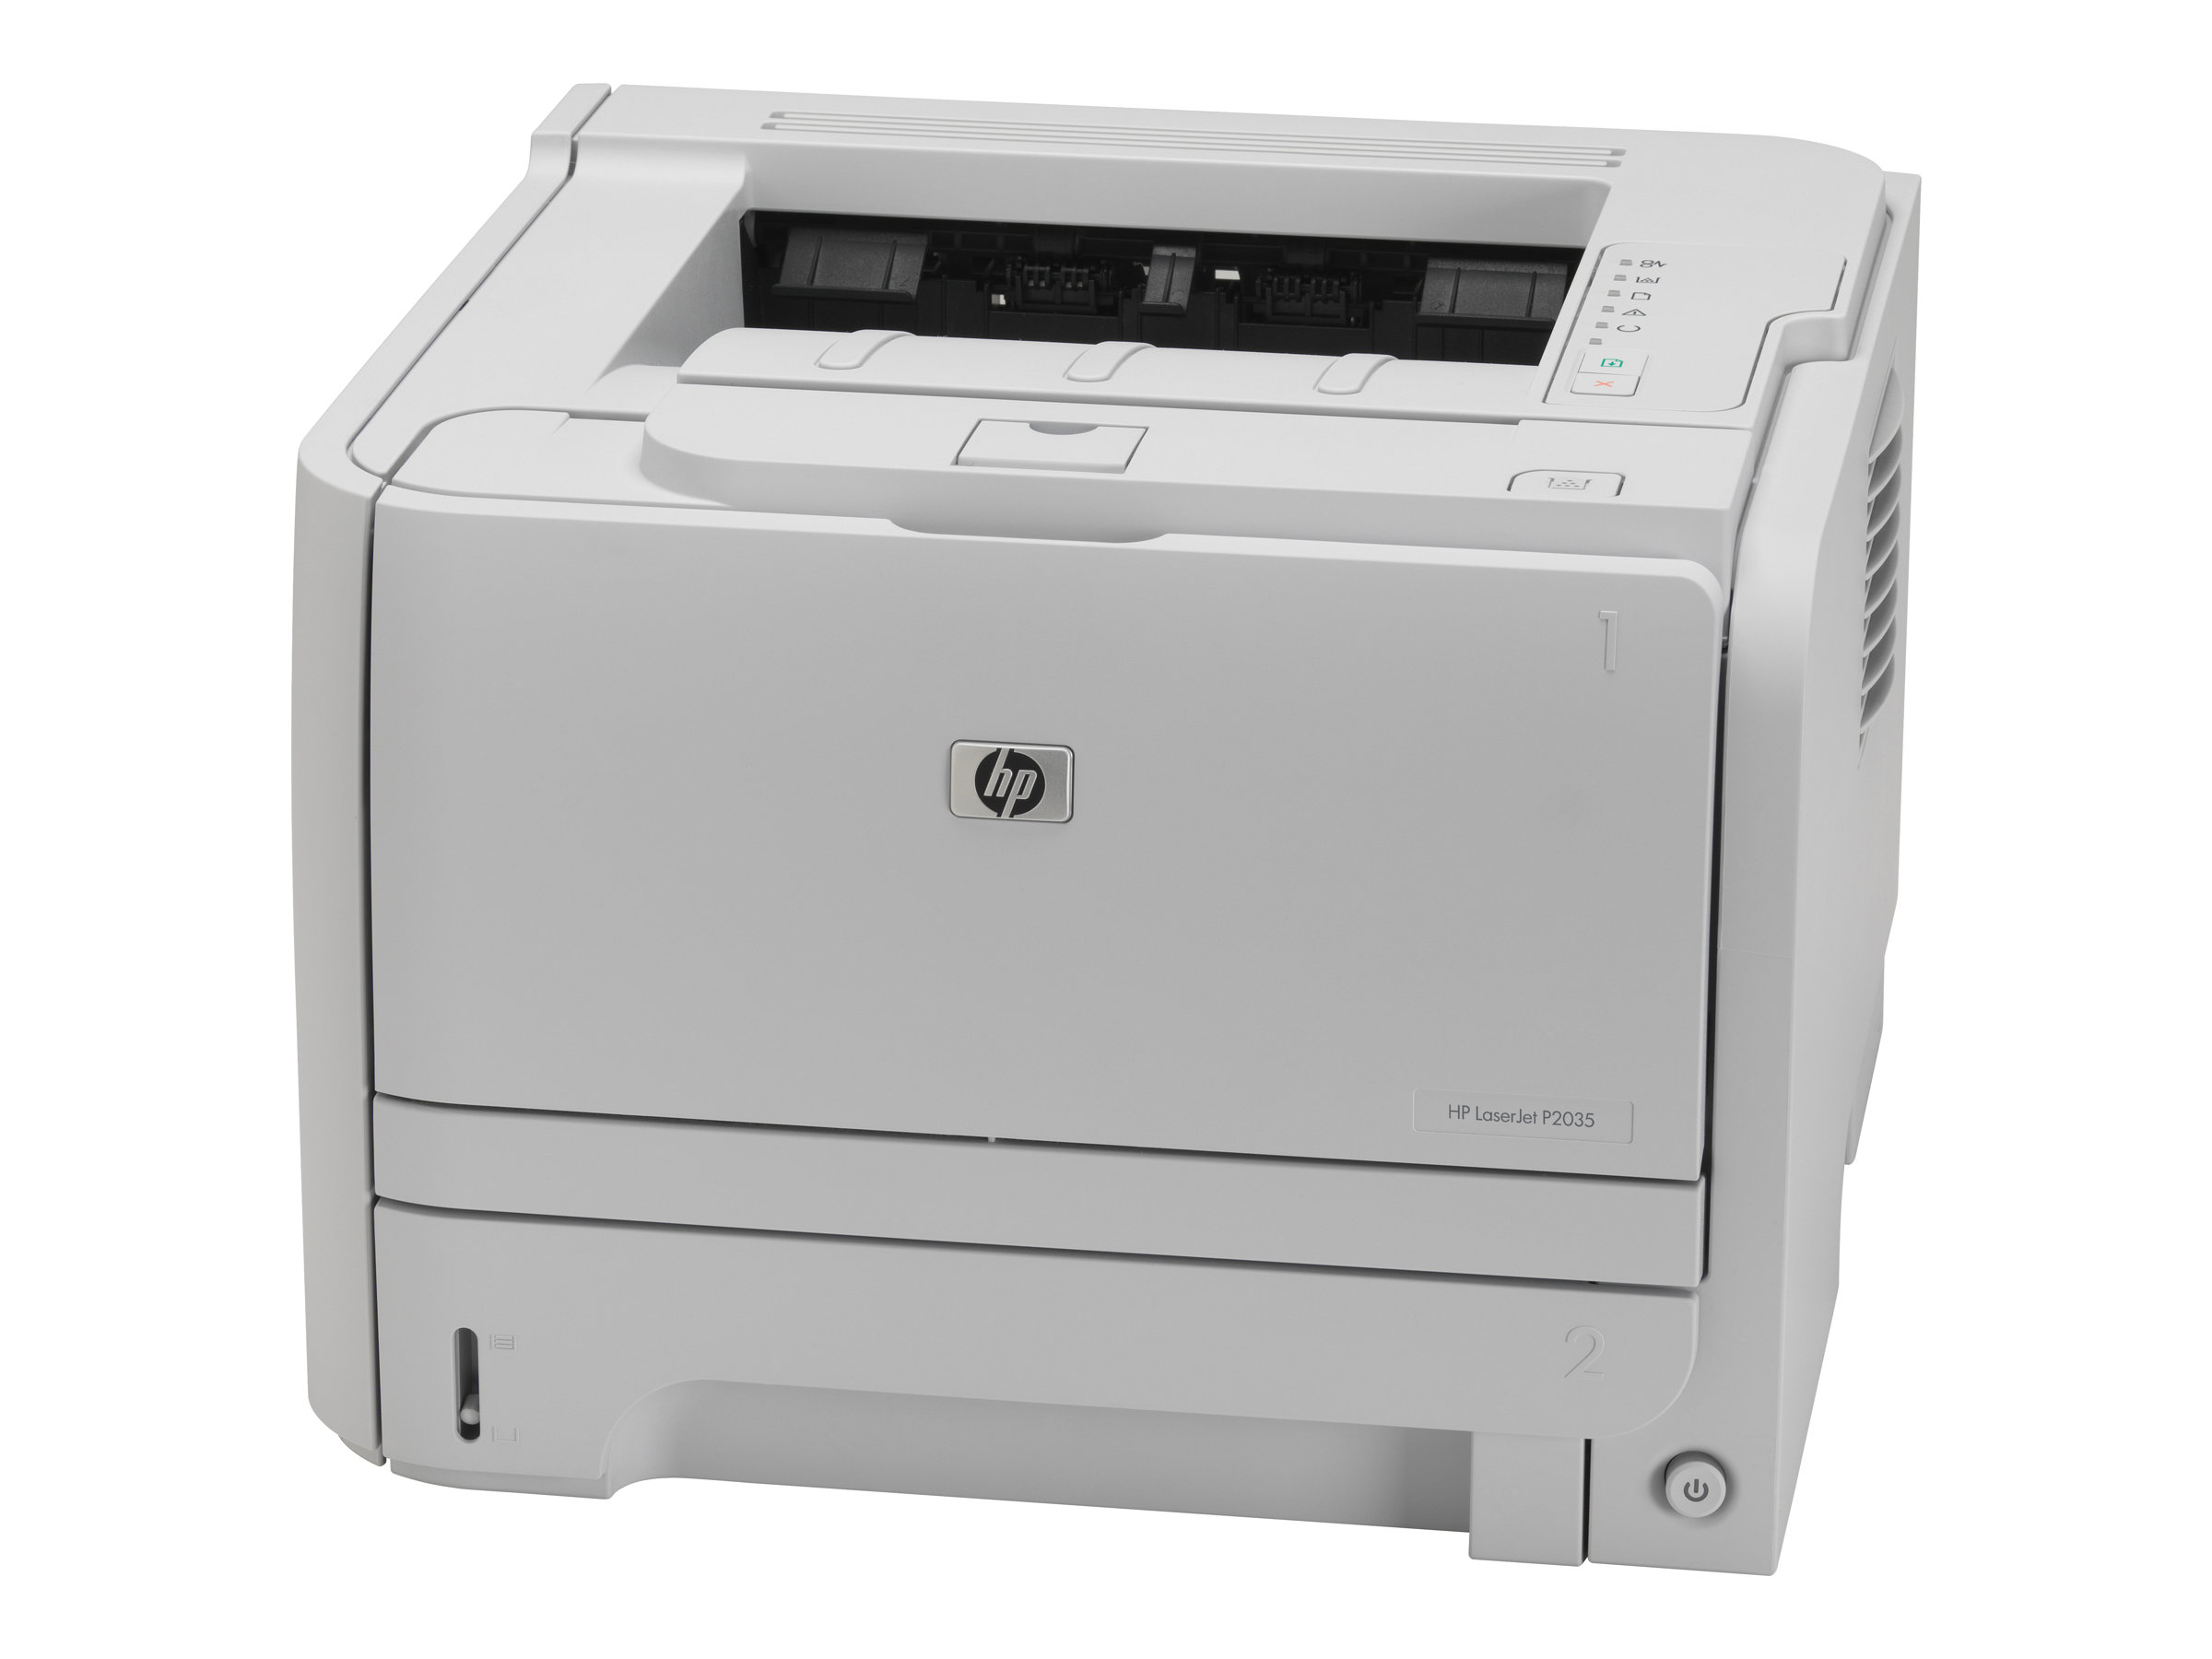 hp laserjet p2035 imprimante monochrome laser. Black Bedroom Furniture Sets. Home Design Ideas